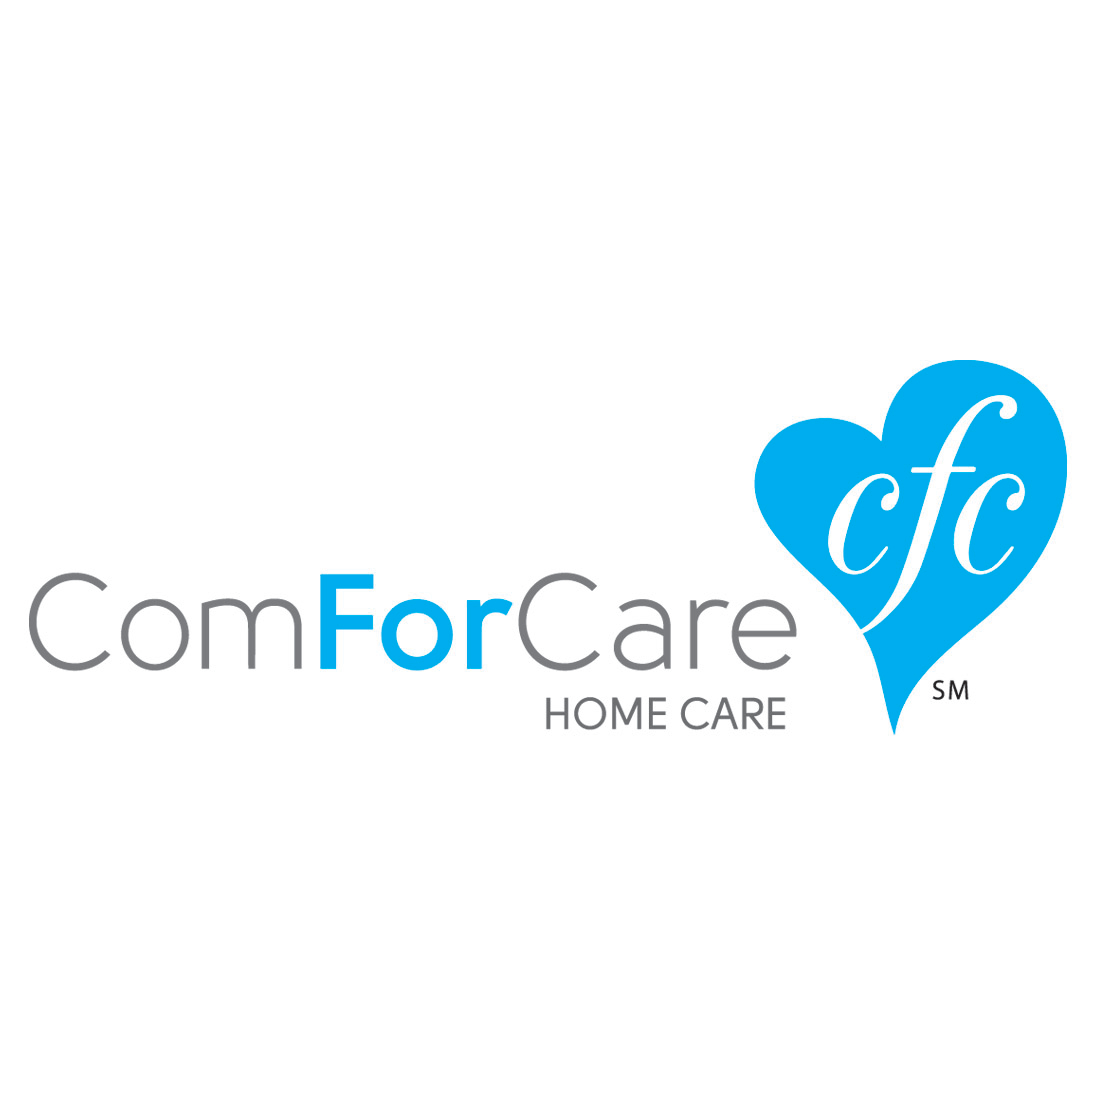 Comforcare Home Care In Palm Beach Gardens Fl 33410